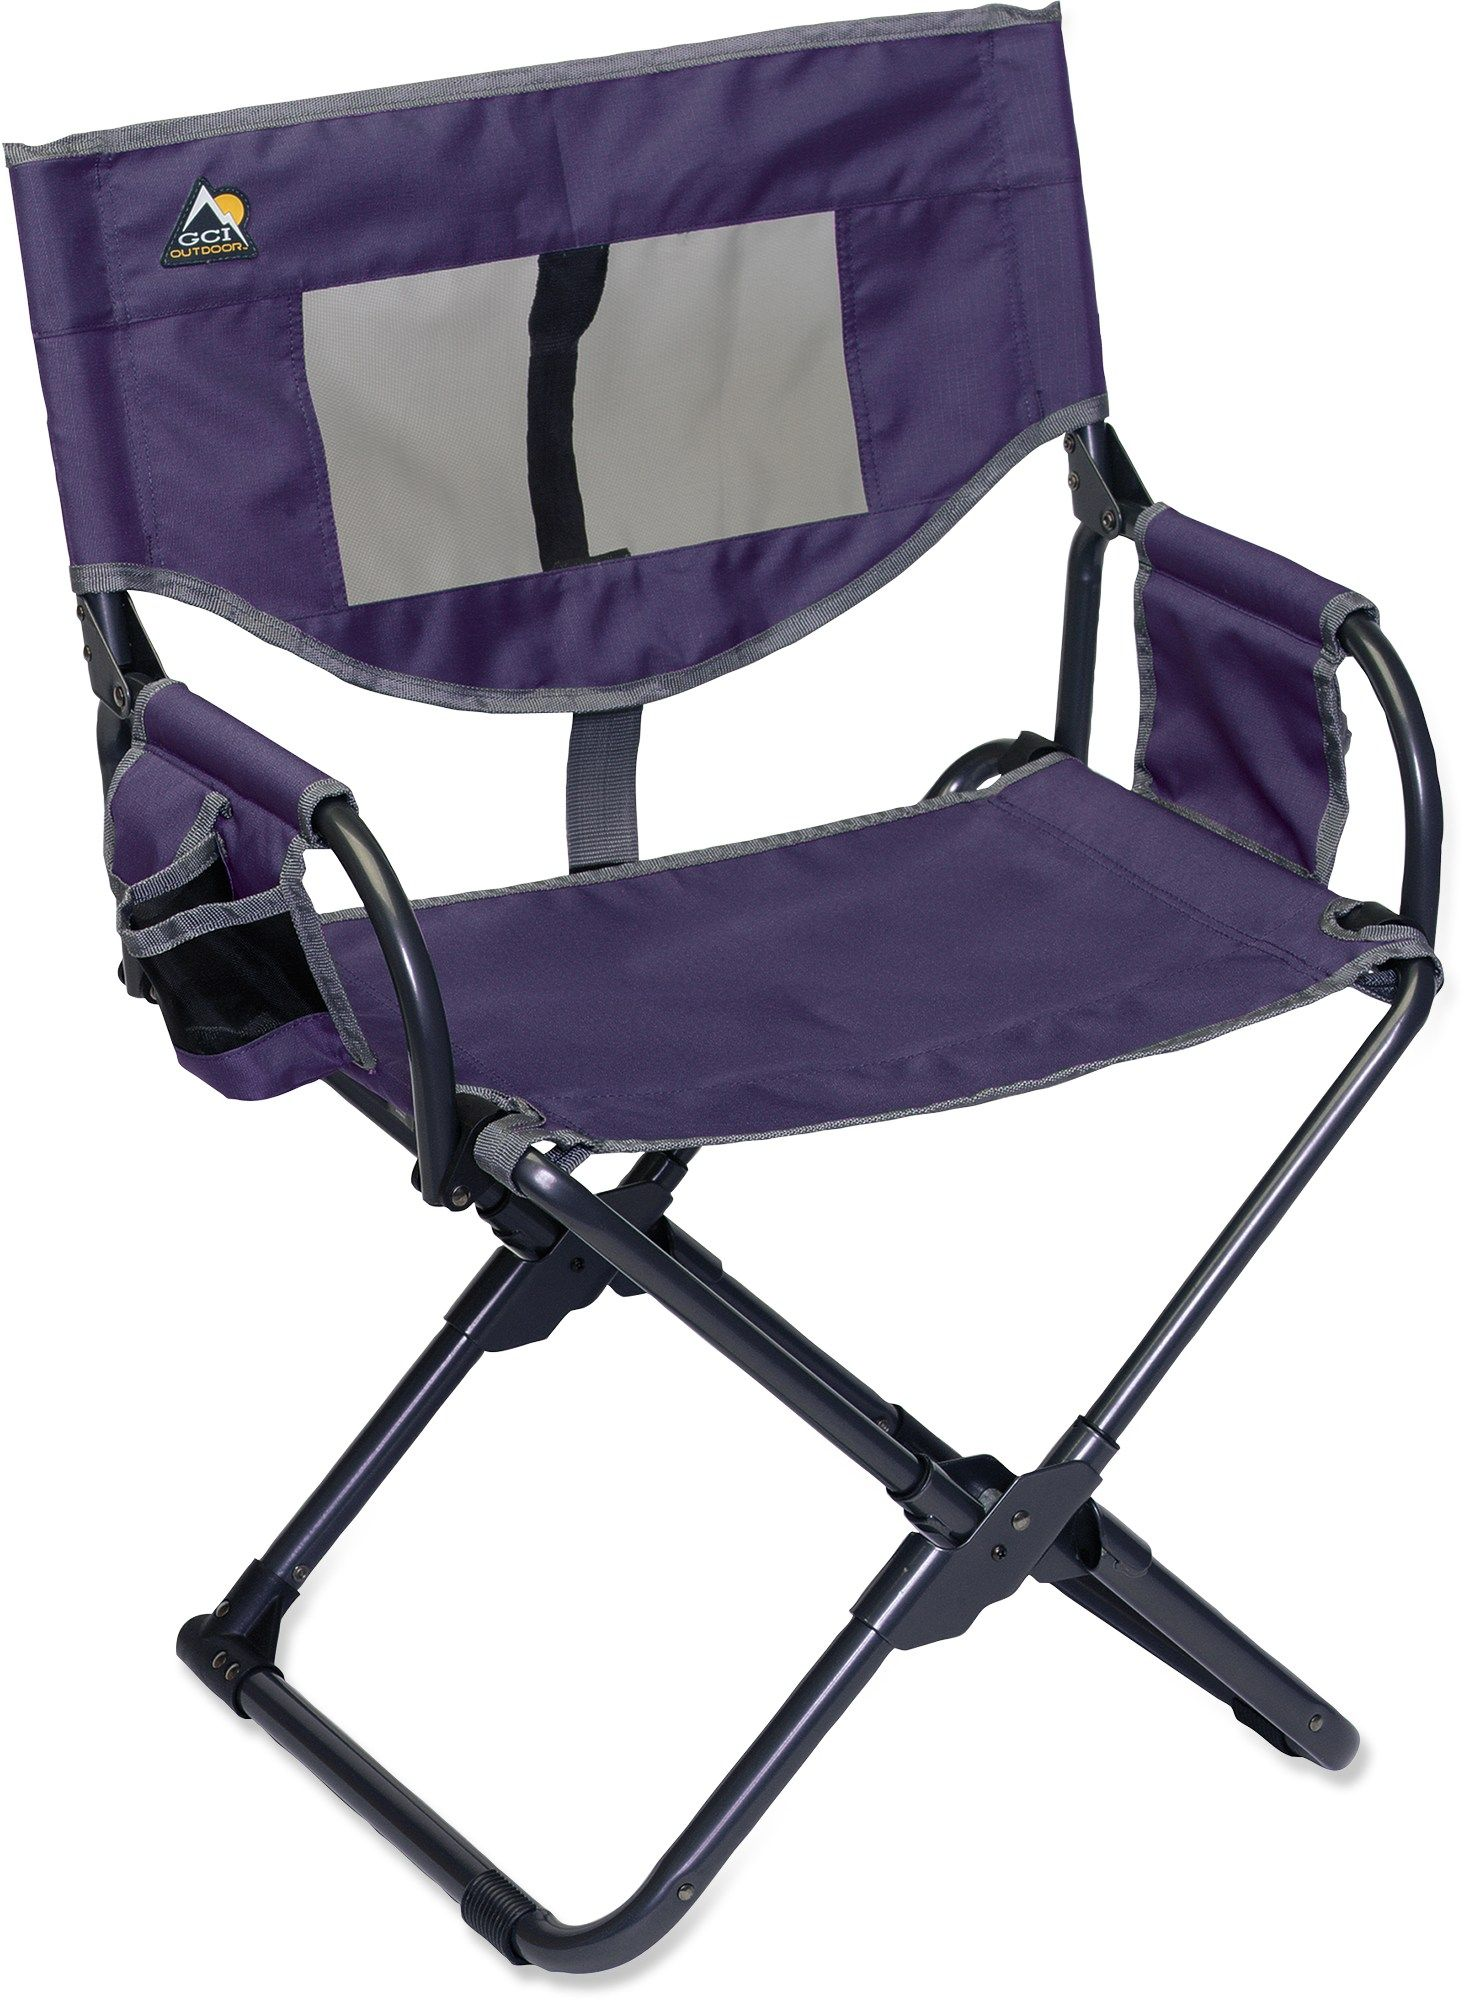 GCI Outdoor Xpress Lounger is proof that comfort can be had for less than $30.